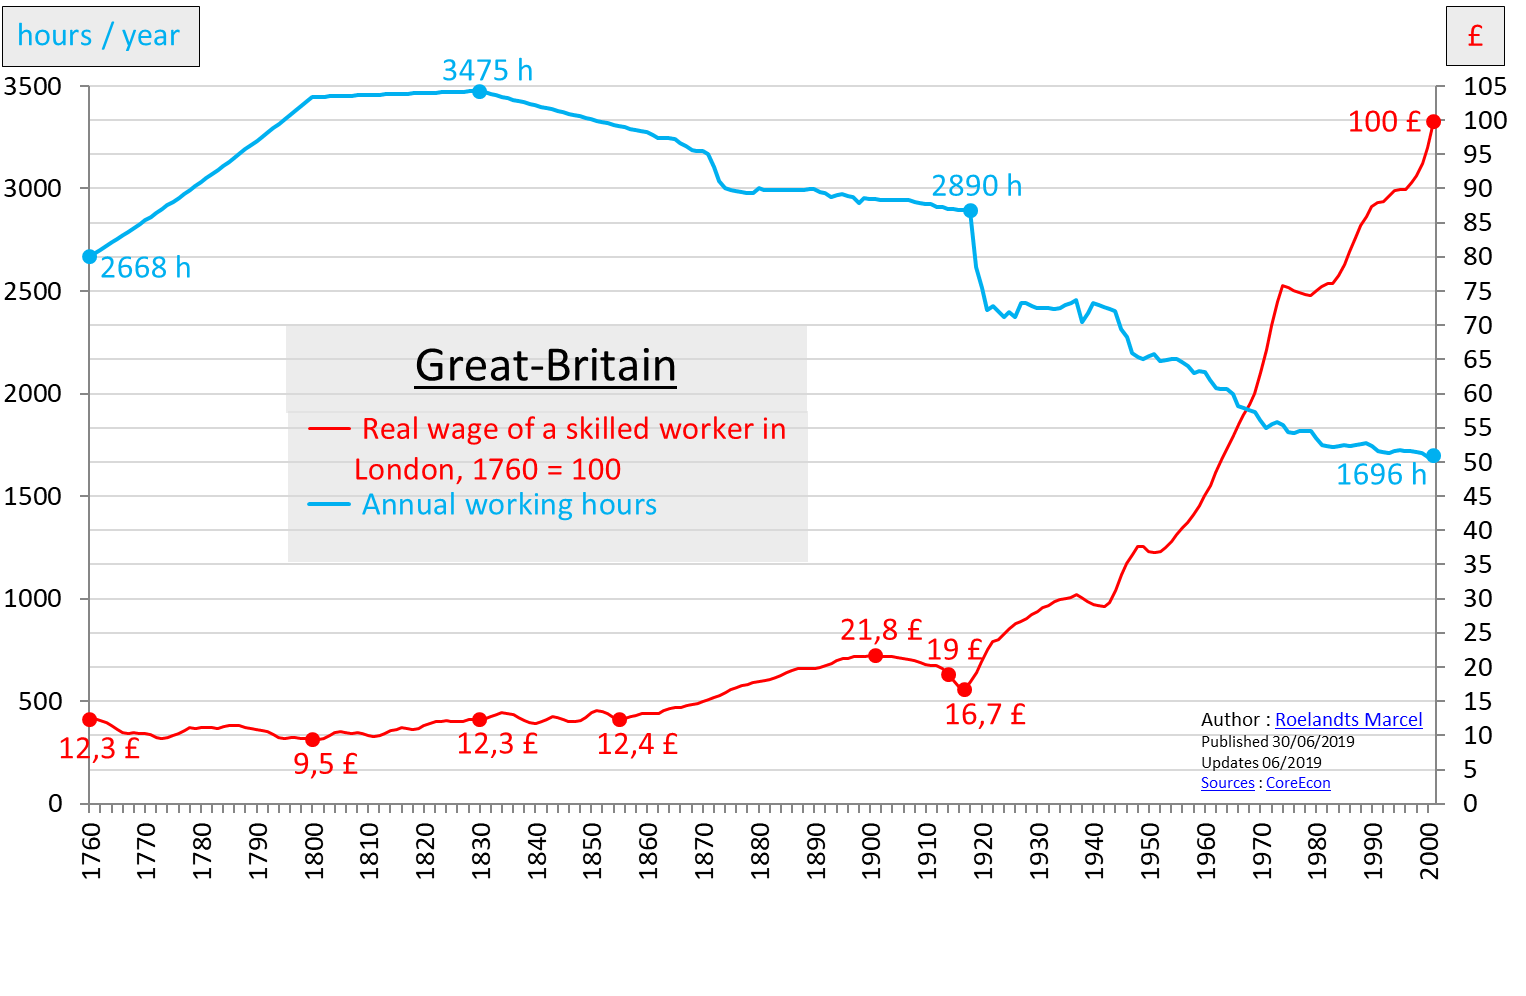 Graph 1.2 - GB real wage of a skilled worker in London 1760 - 2001